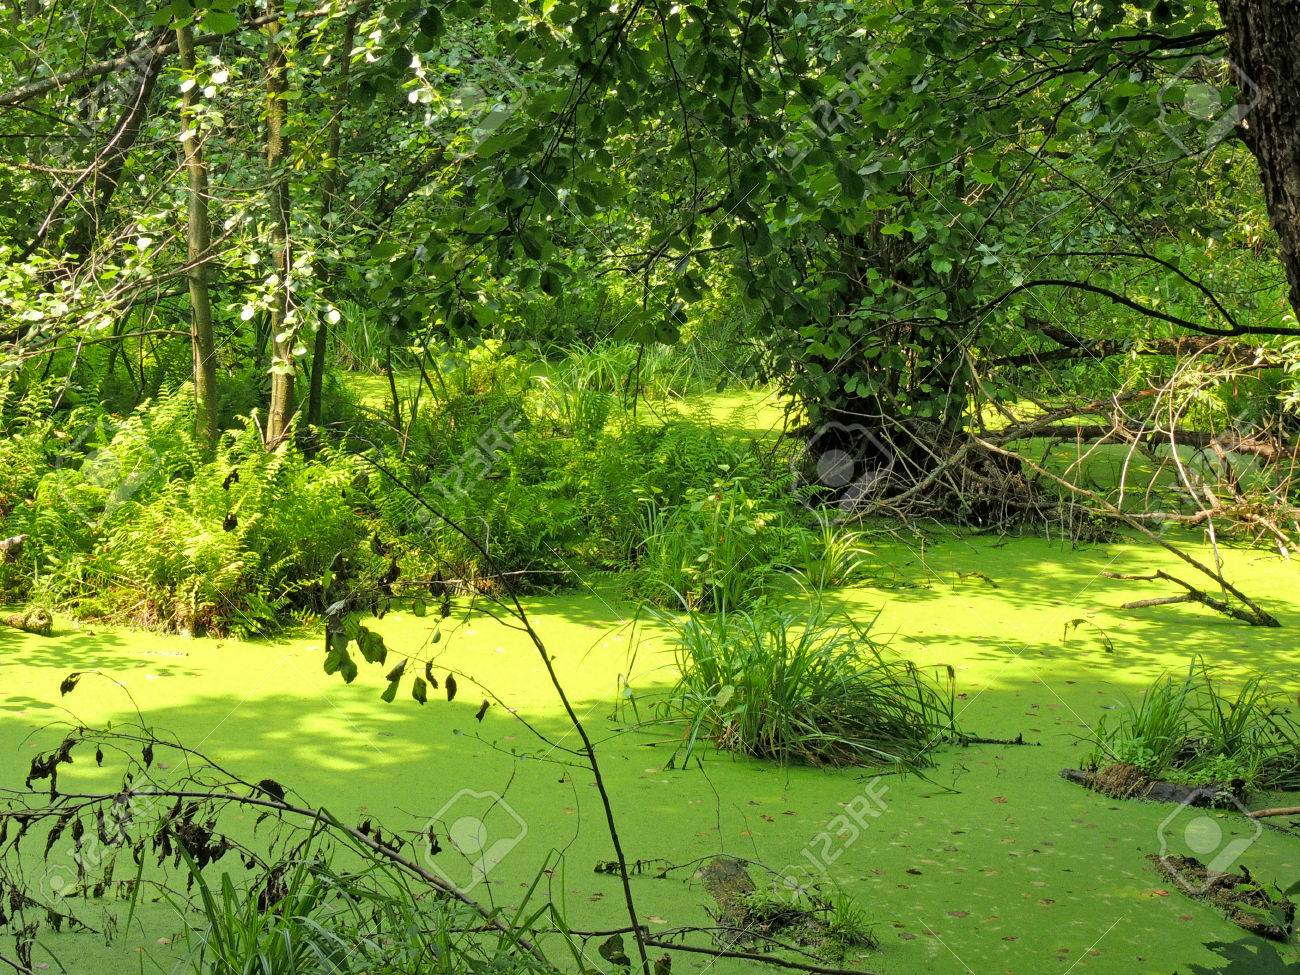 A Freshwater Swamp In The Forest Stock Photo, Picture And Royalty ...